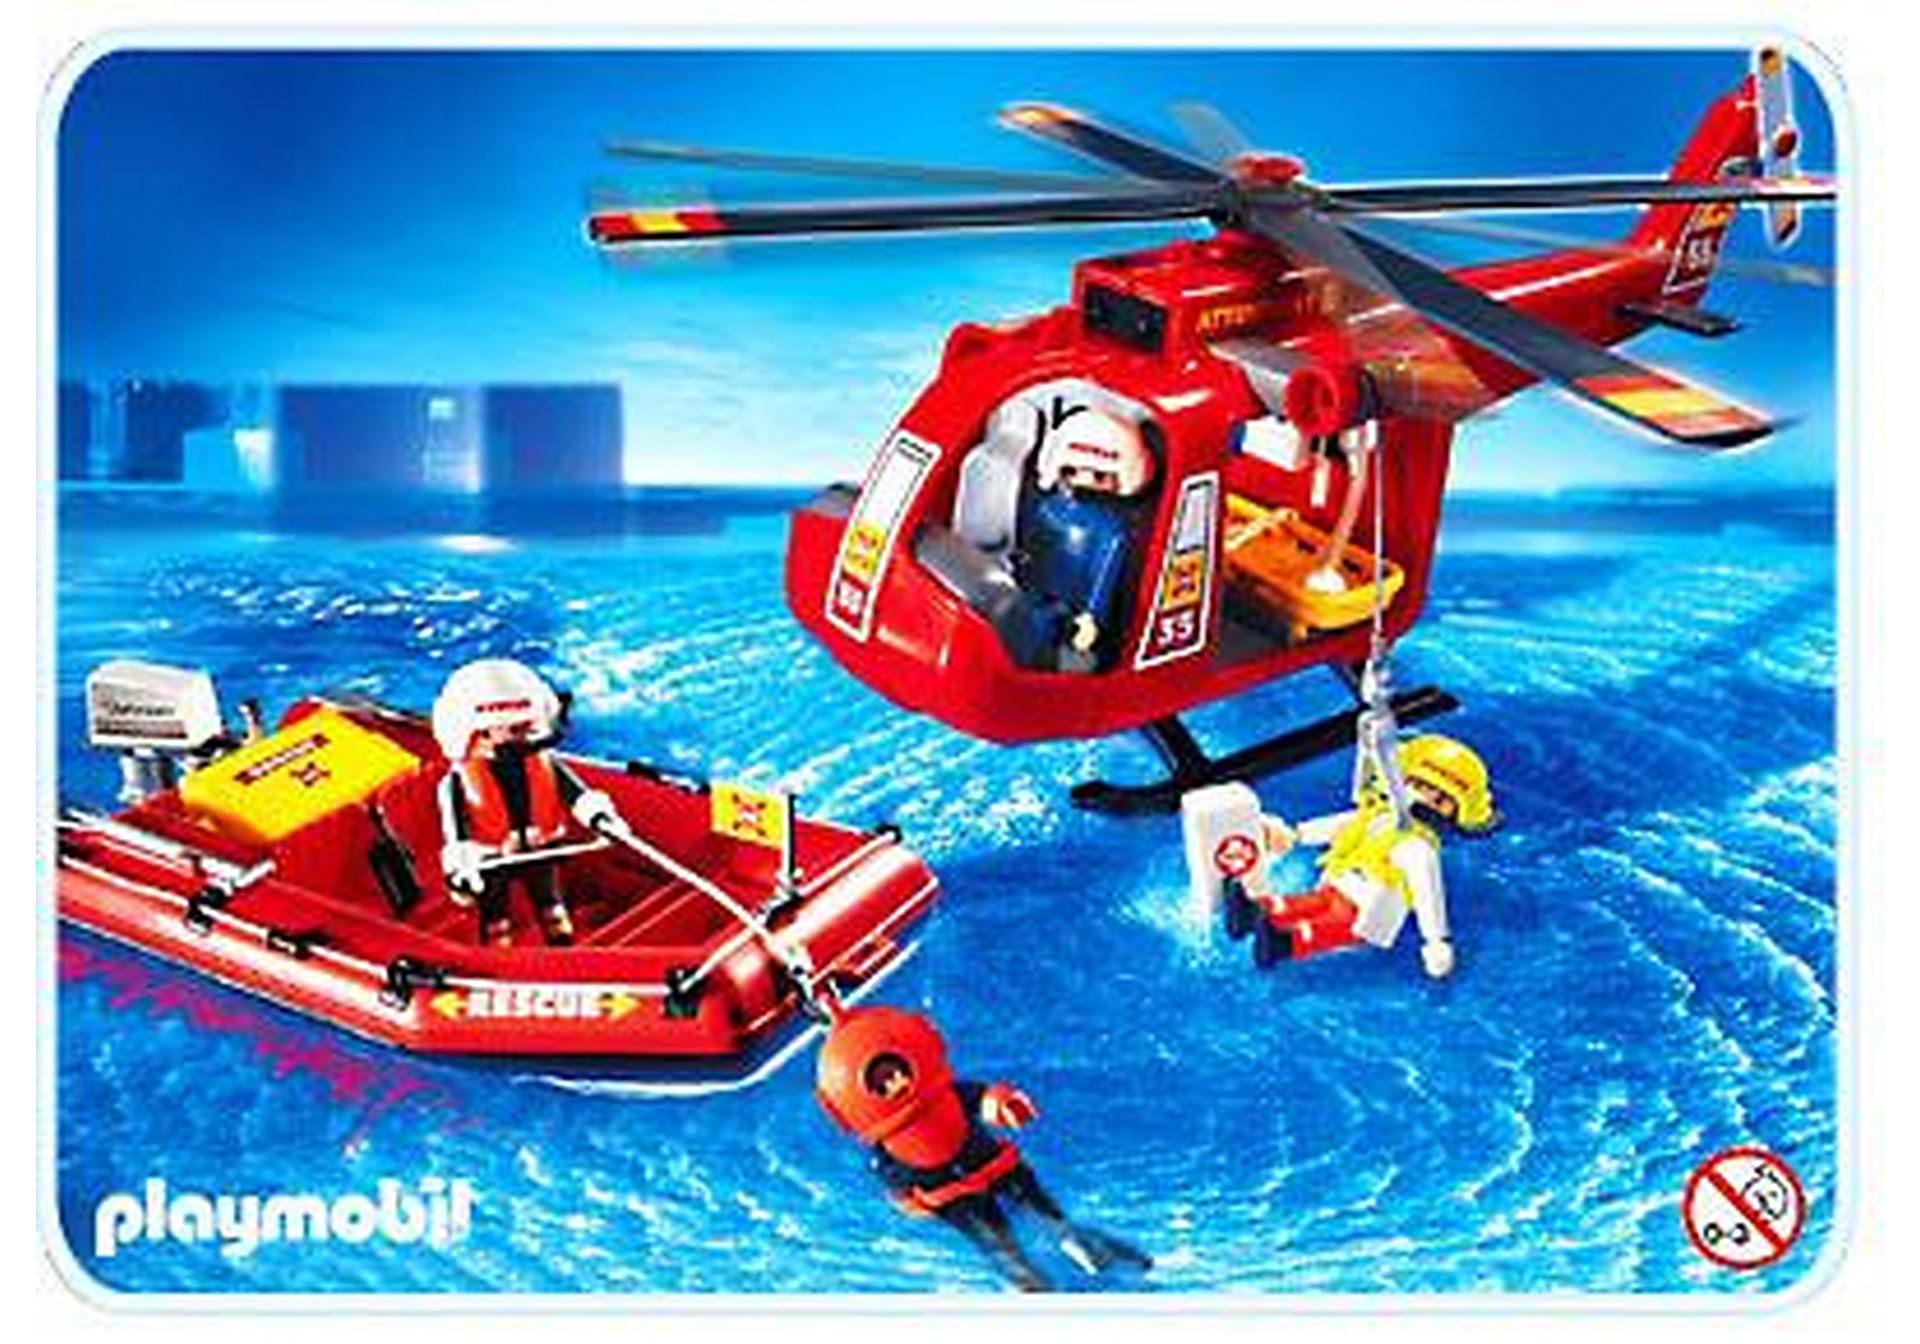 http://media.playmobil.com/i/playmobil/4428-A_product_detail/SOS-Helikopter/Rettungsboot